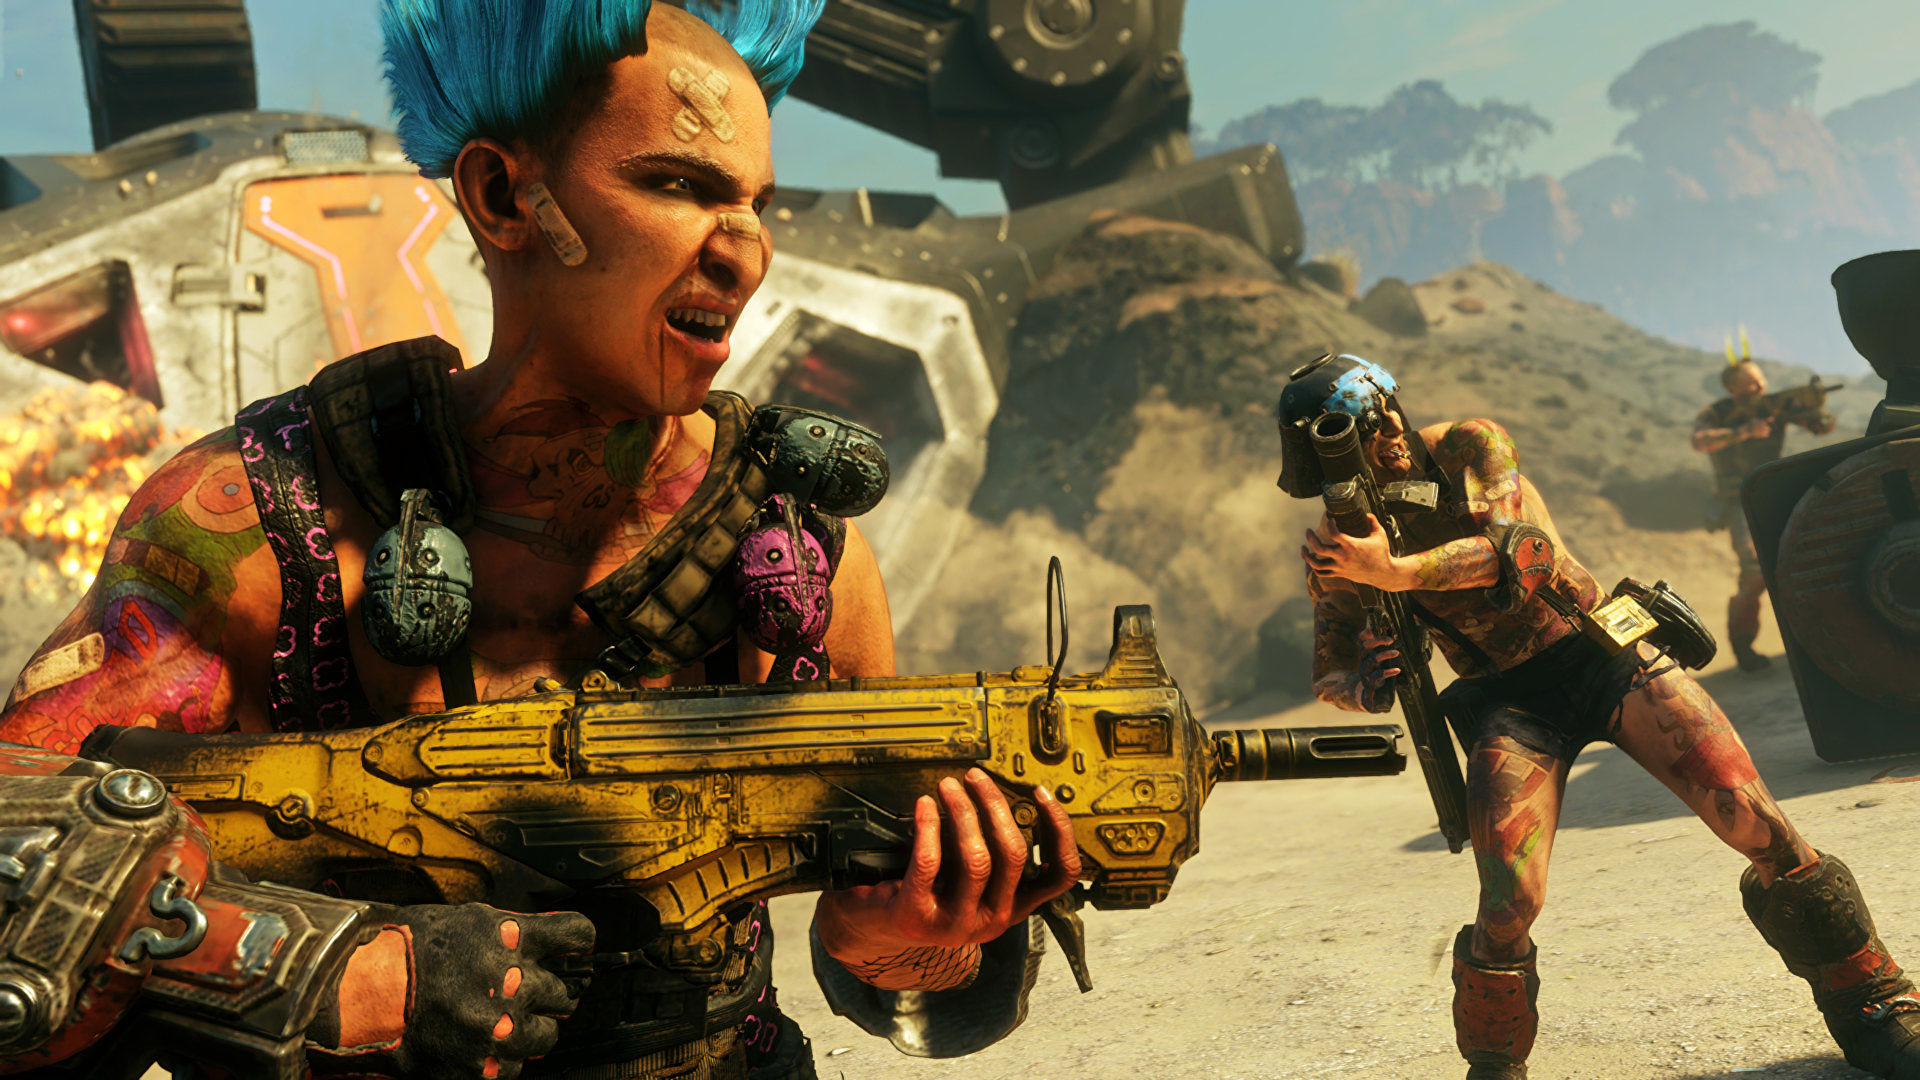 Rage 2 will be free on the Epic Games Store next week